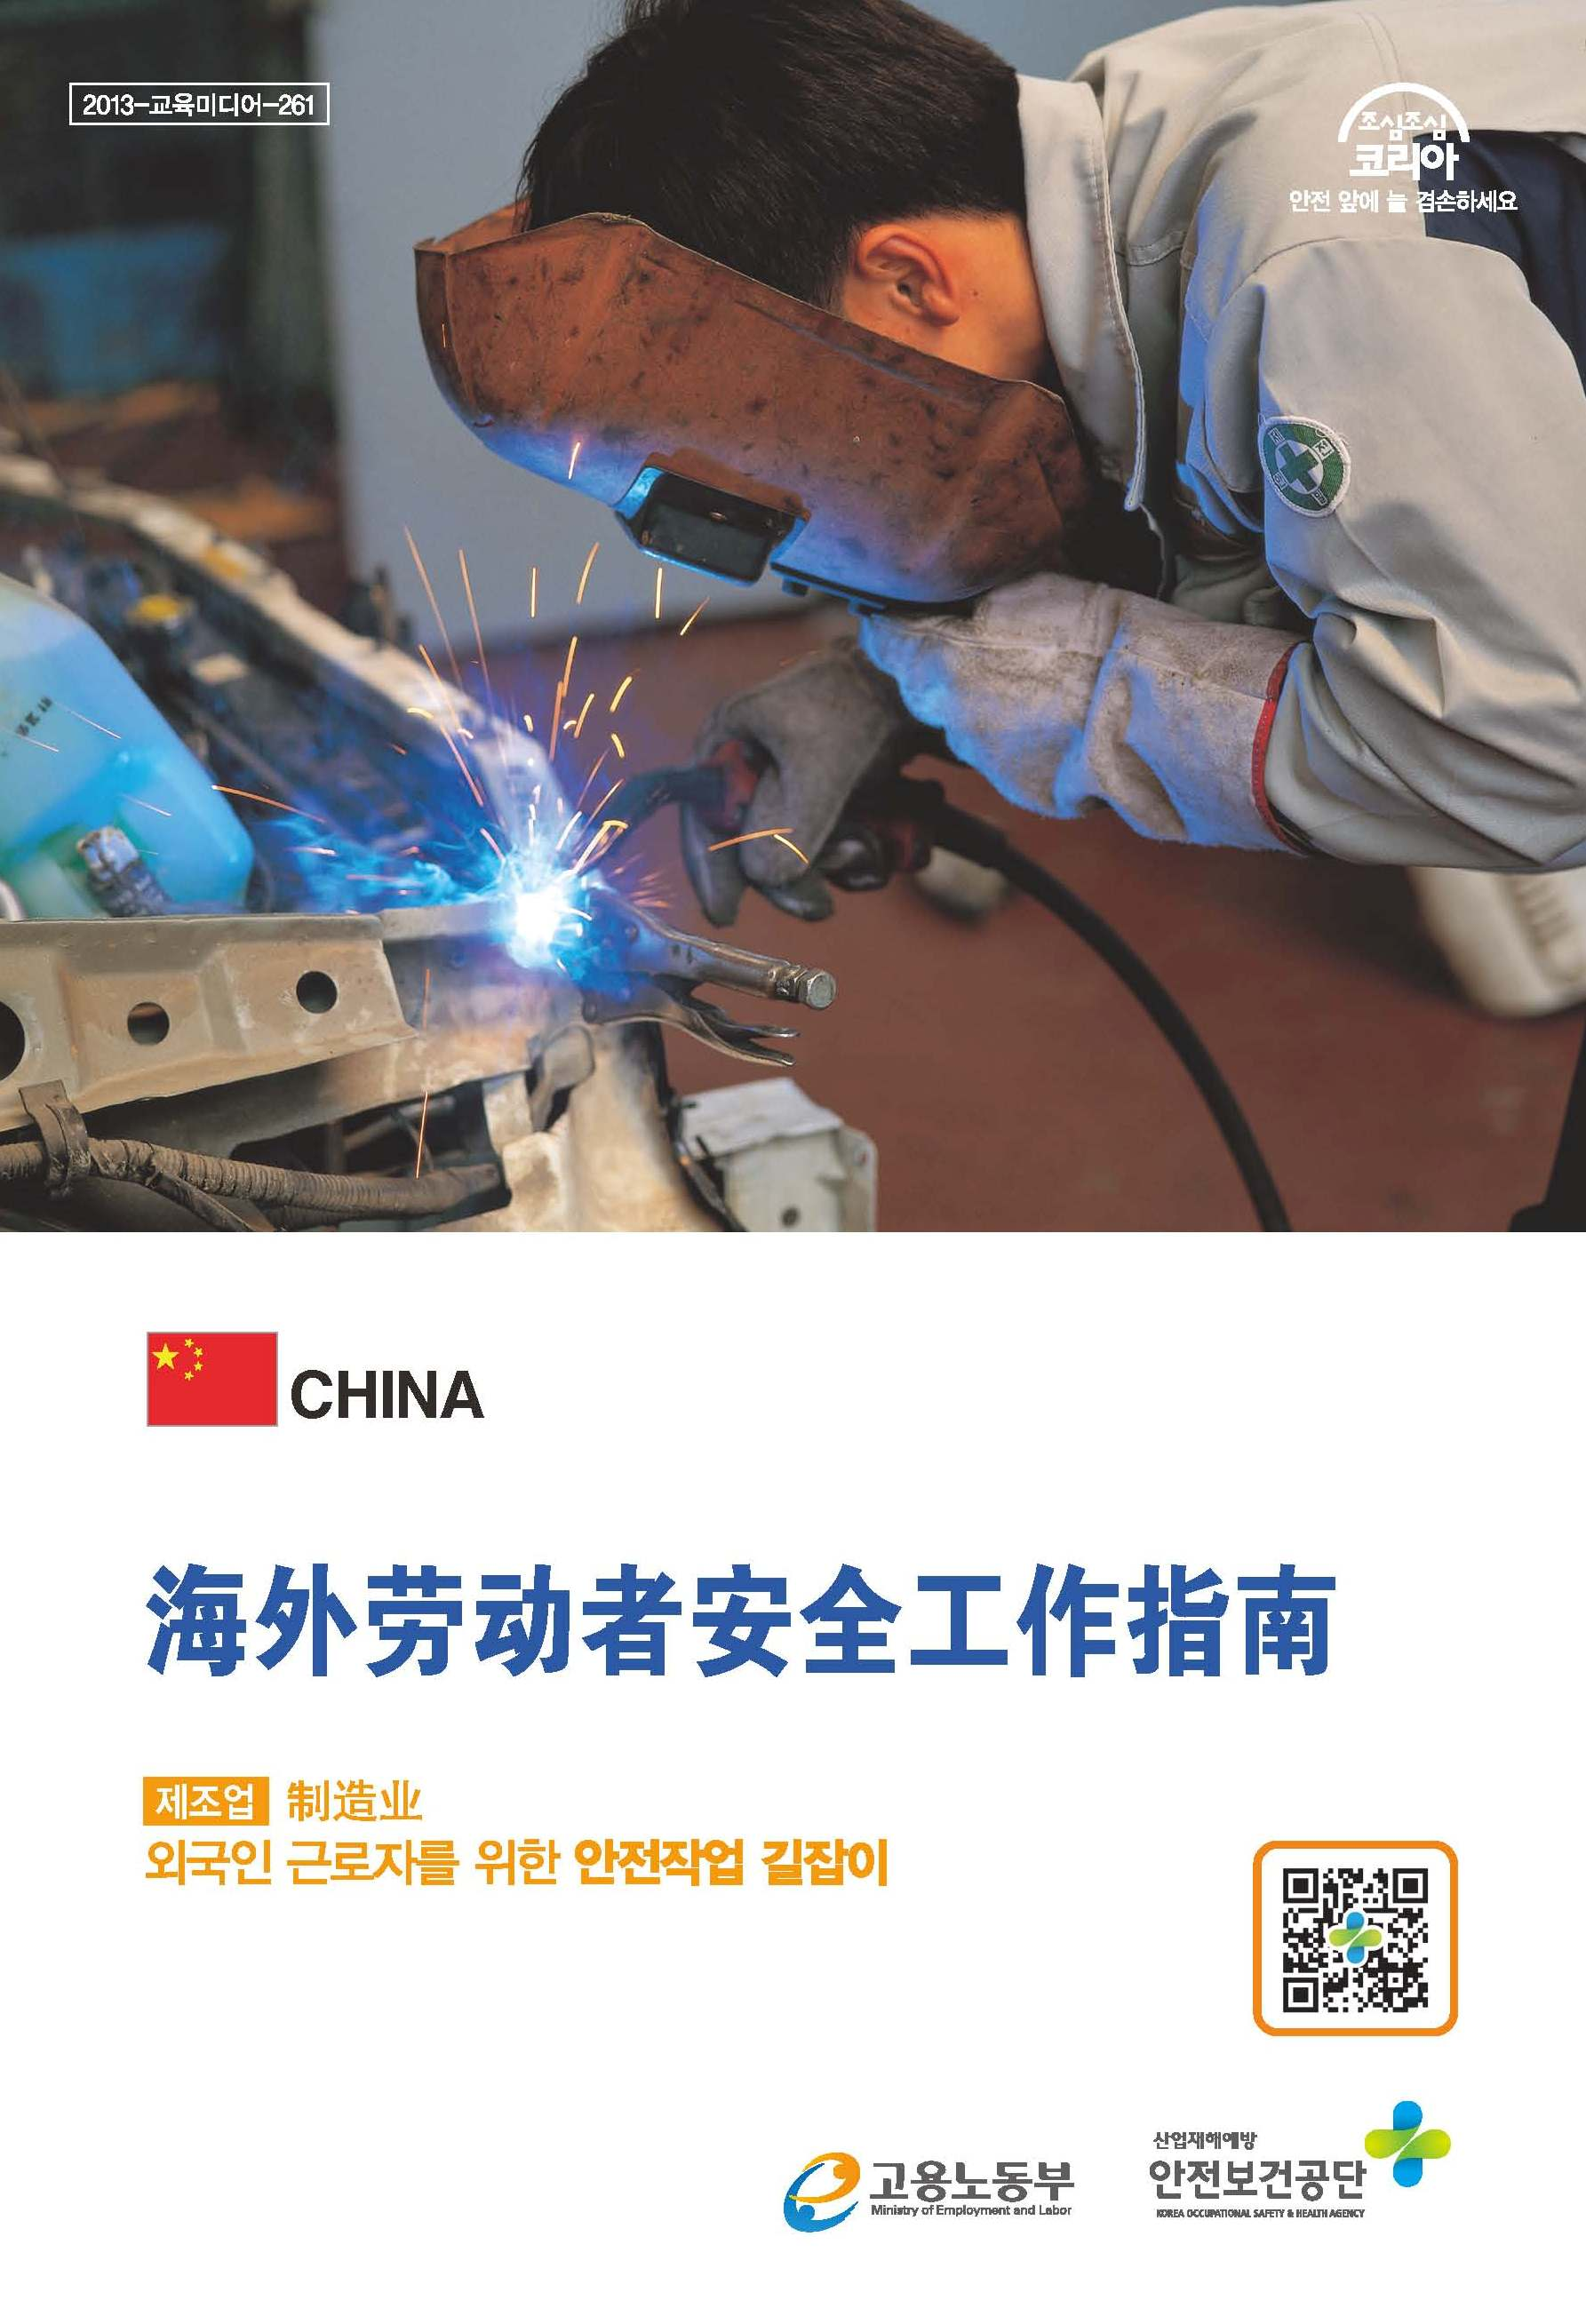 (Manufacturing Industry) Safety Guide for Foreign Workers (Chinese) (제조업)외국인근로자를 위한 안전작업길잡이(중국)